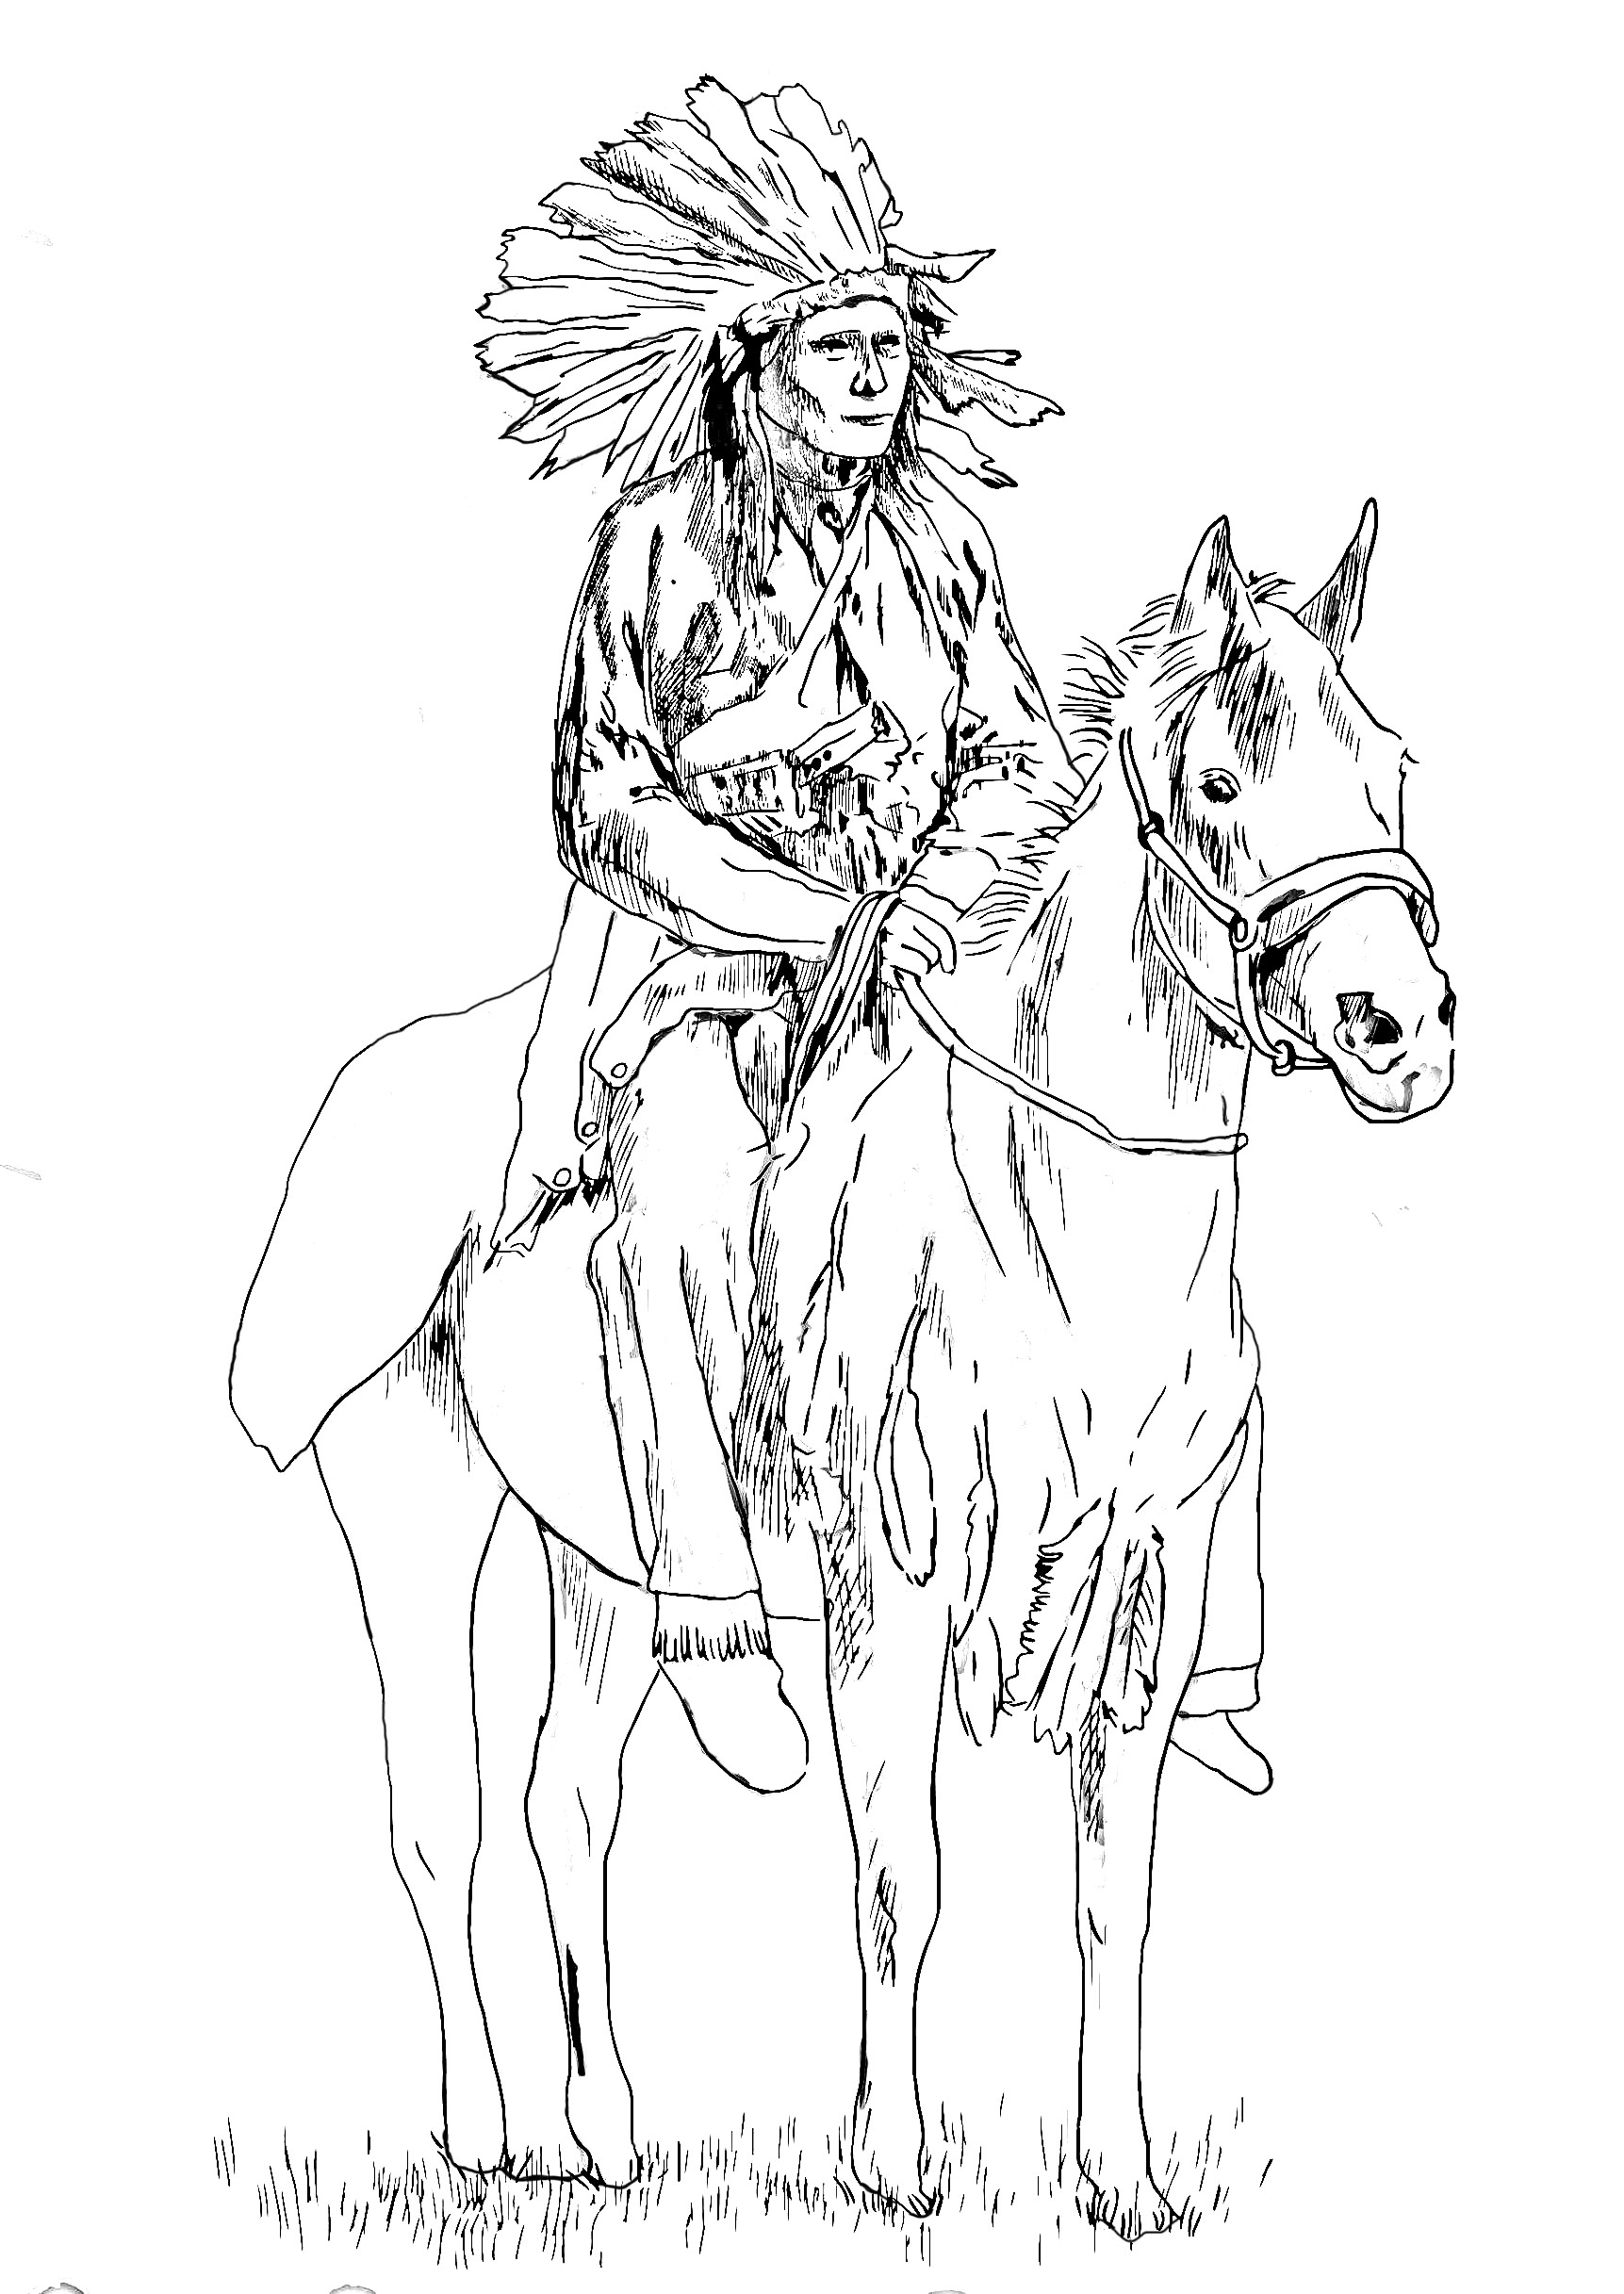 image=in ns d amerique coloriage adulte in n sur son cheval 1